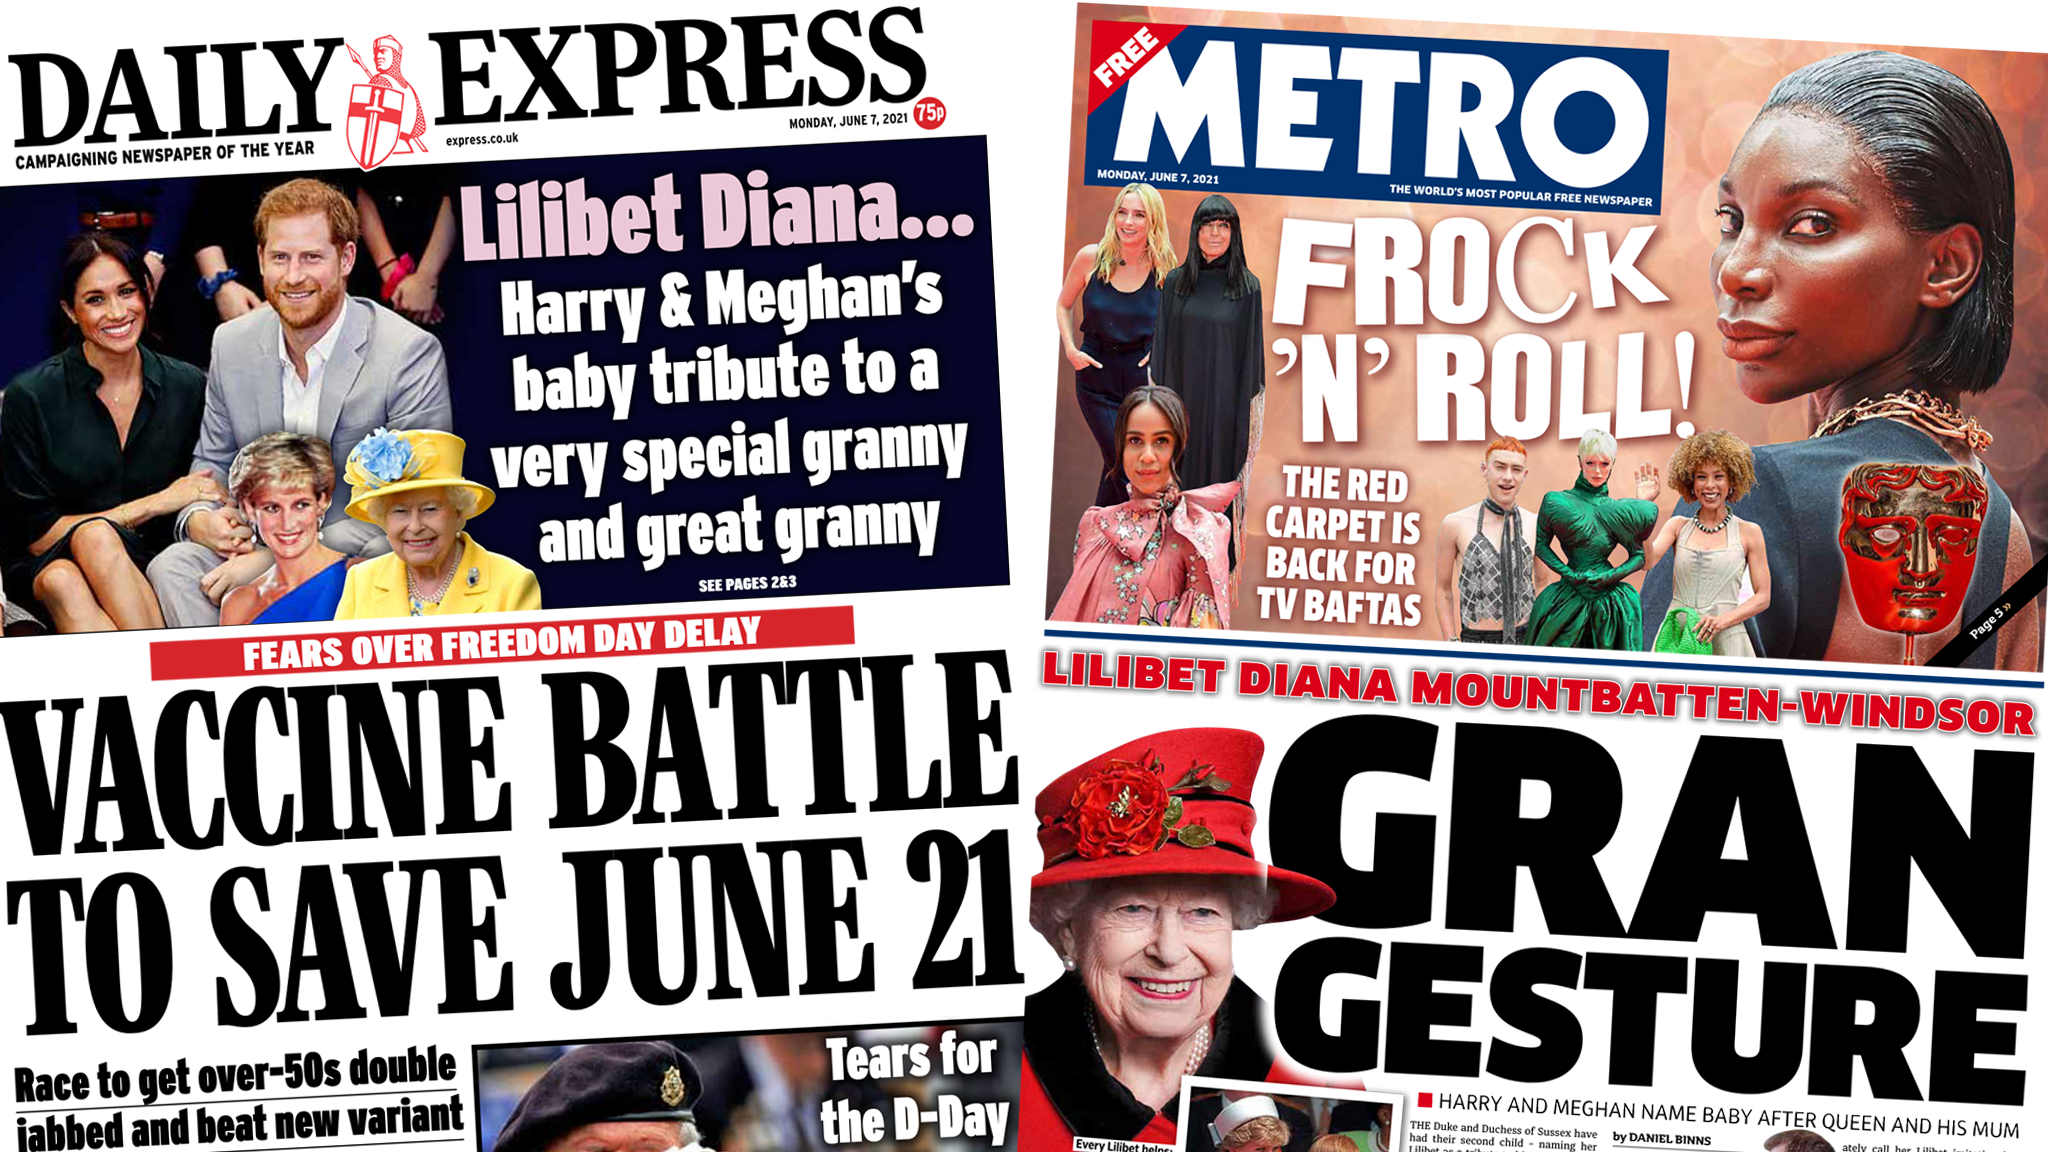 Express and Metro 7 June